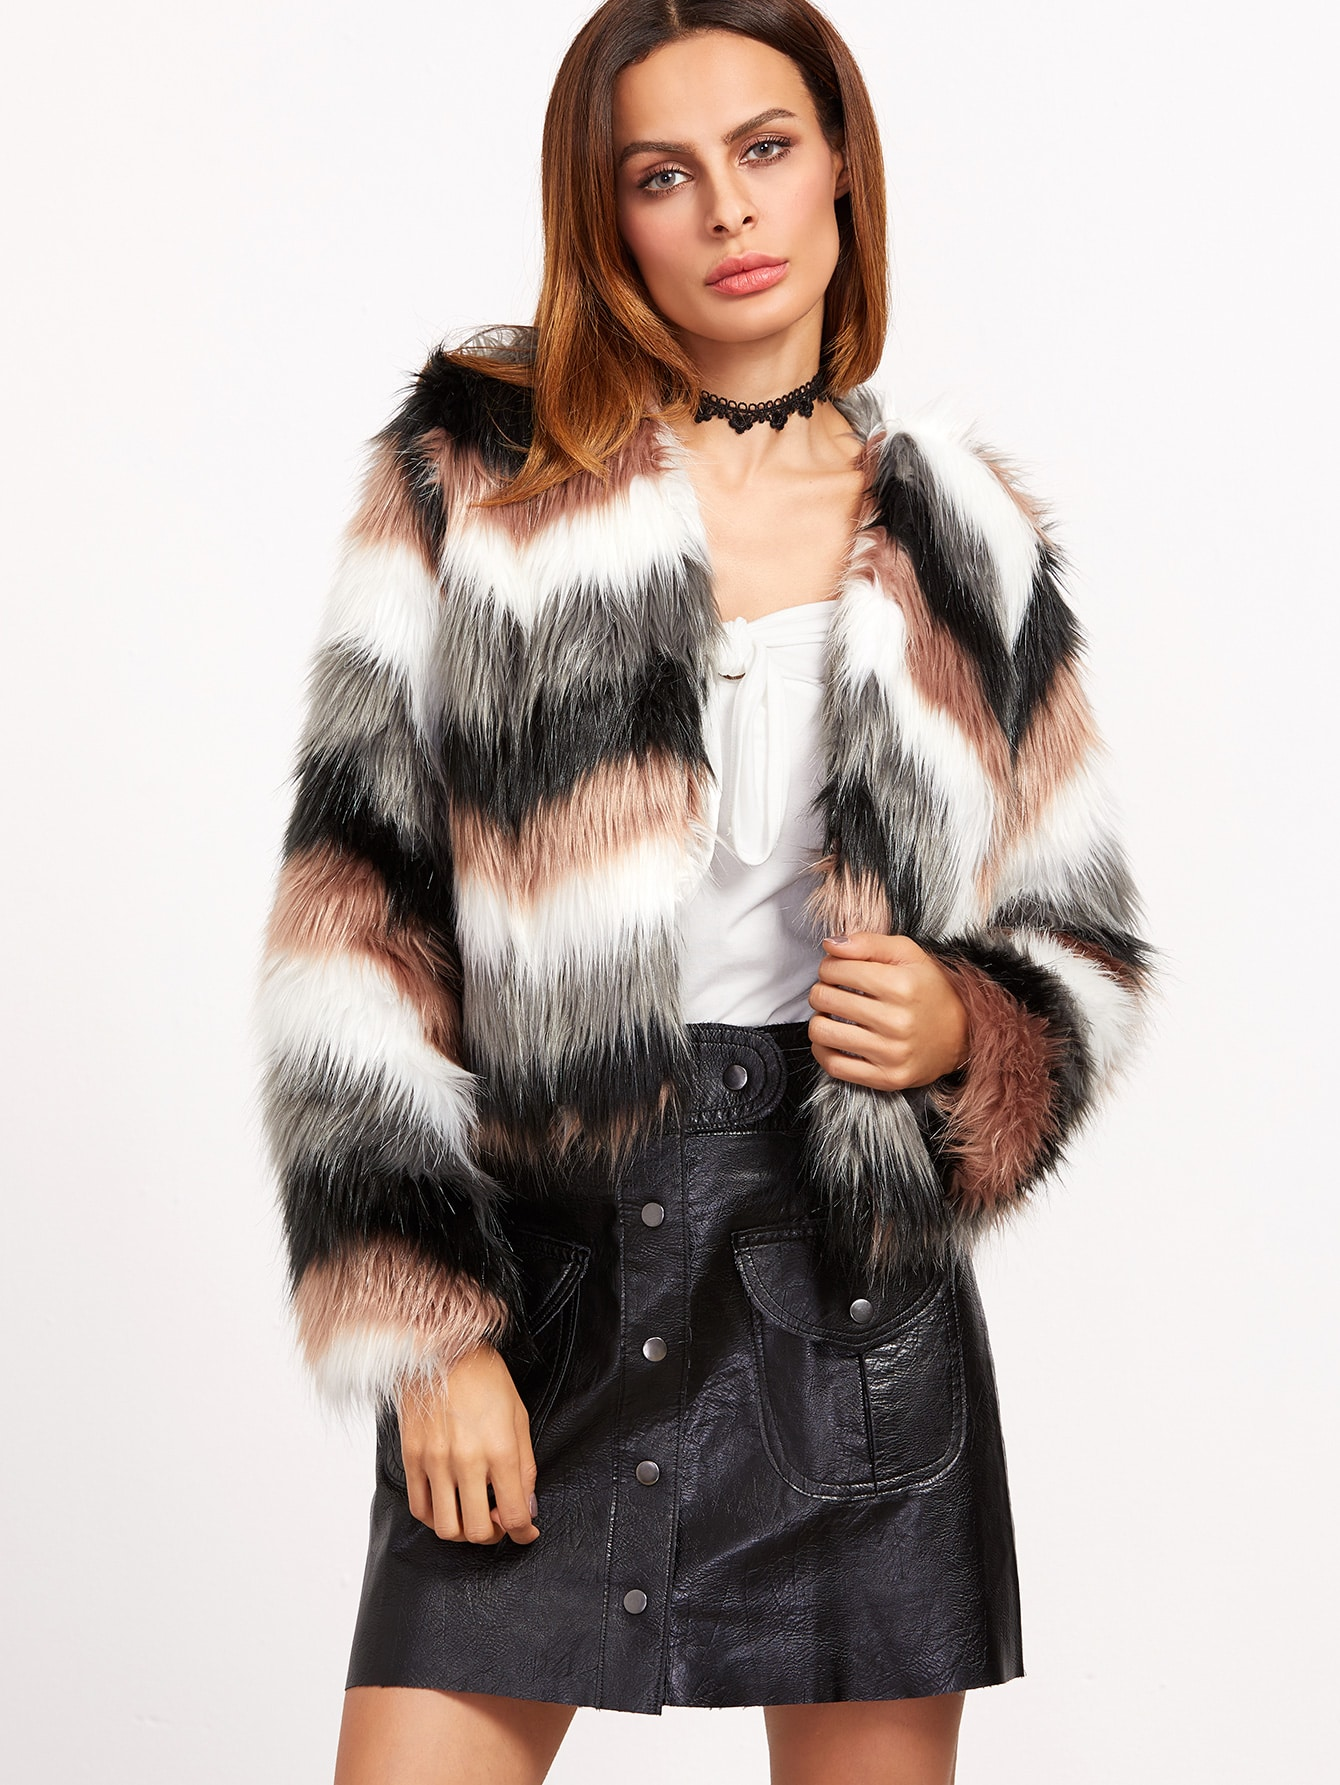 Coats White Black Grey Pink Faux Fur Collarless Elegant Crop Winter Color Block Fabric has no stretch Long Sleeve Outerwear.